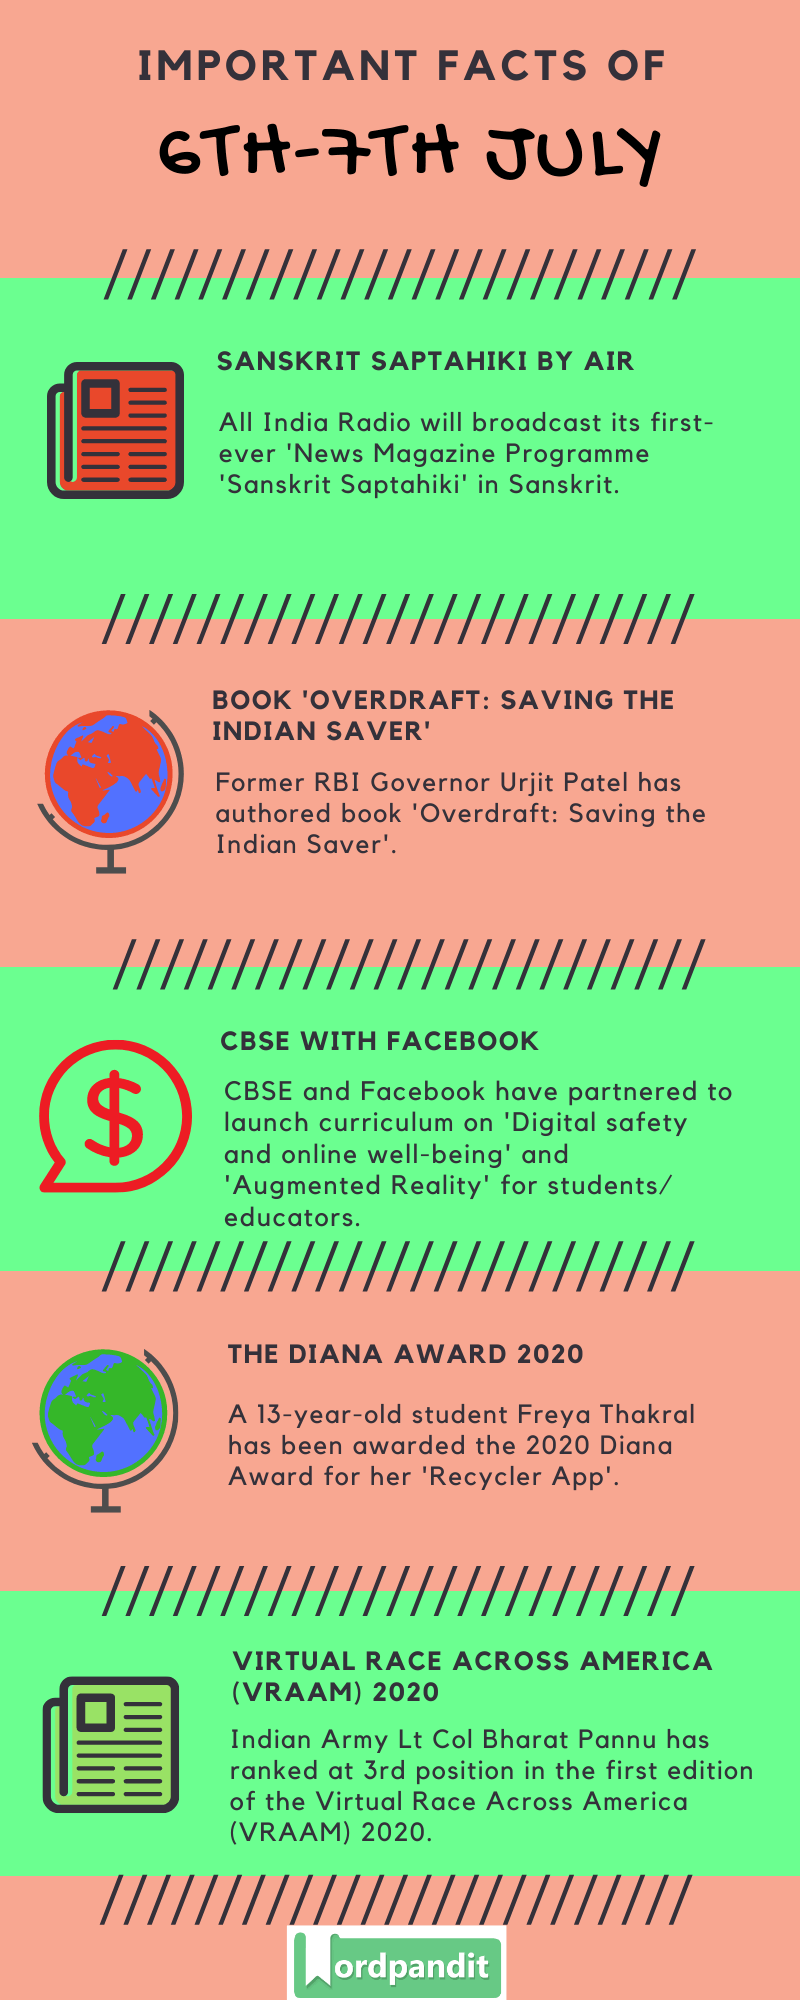 Daily Current Affairs 6th-7th July 2020 Current Affairs Quiz 6th-7th July 2020 Current Affairs Infographic